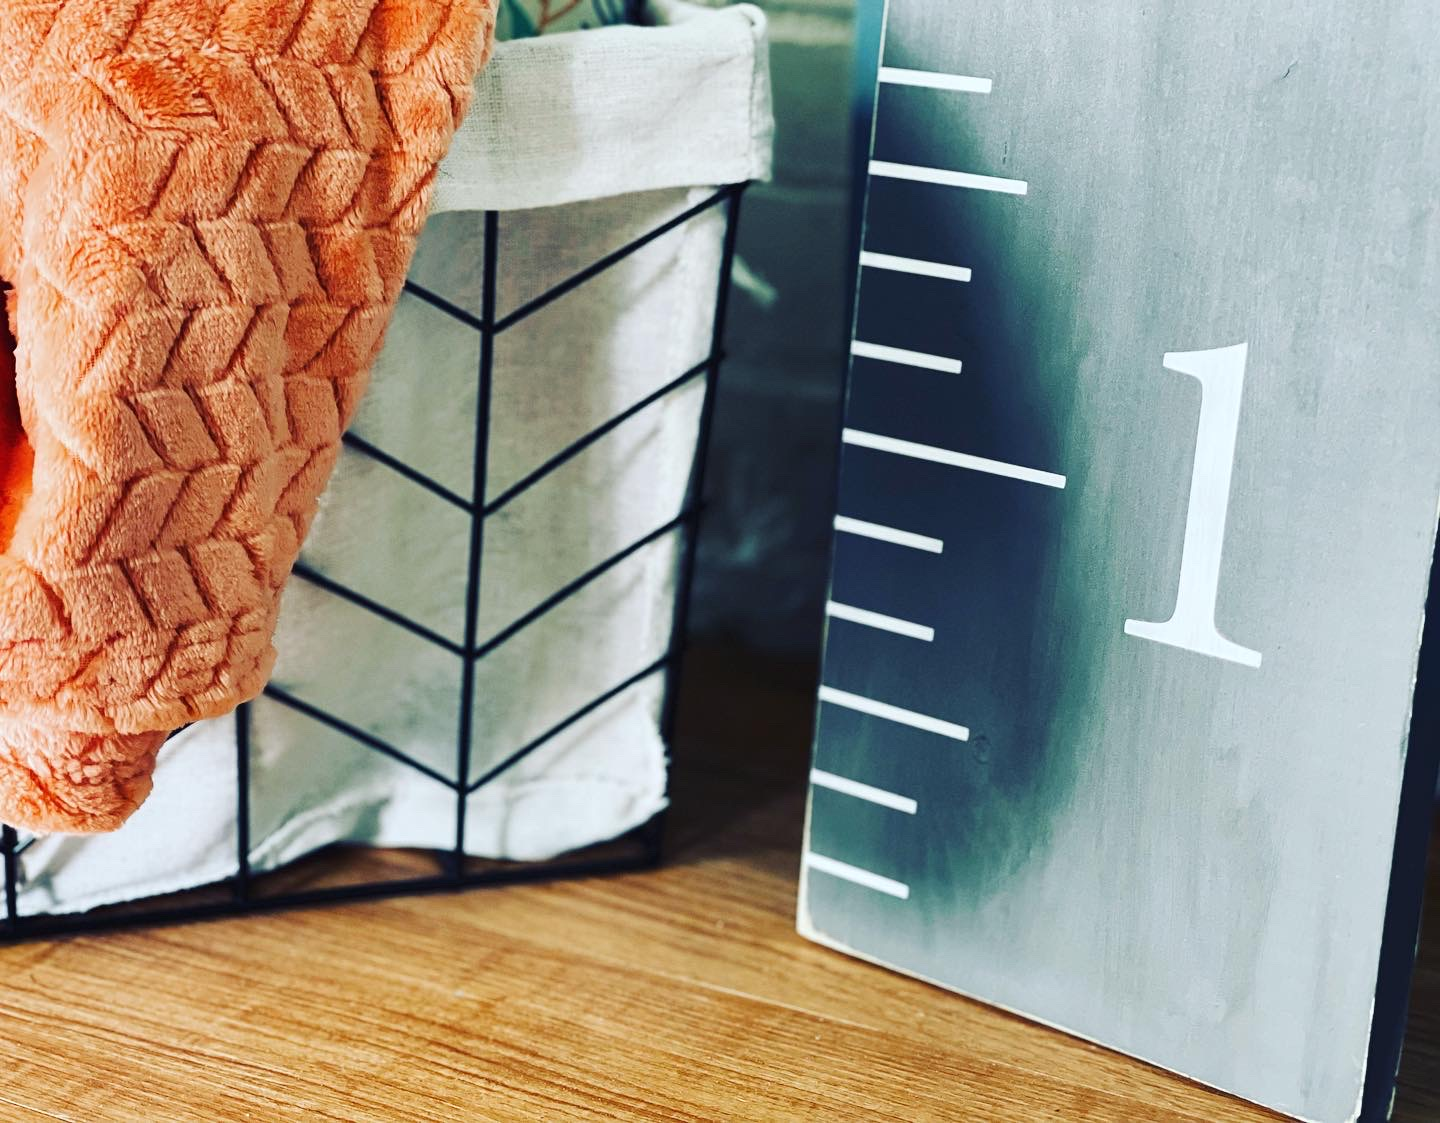 gray and white painted wooden growth chart ruler. Metal basket beside the growth chart with a orange colored blanket